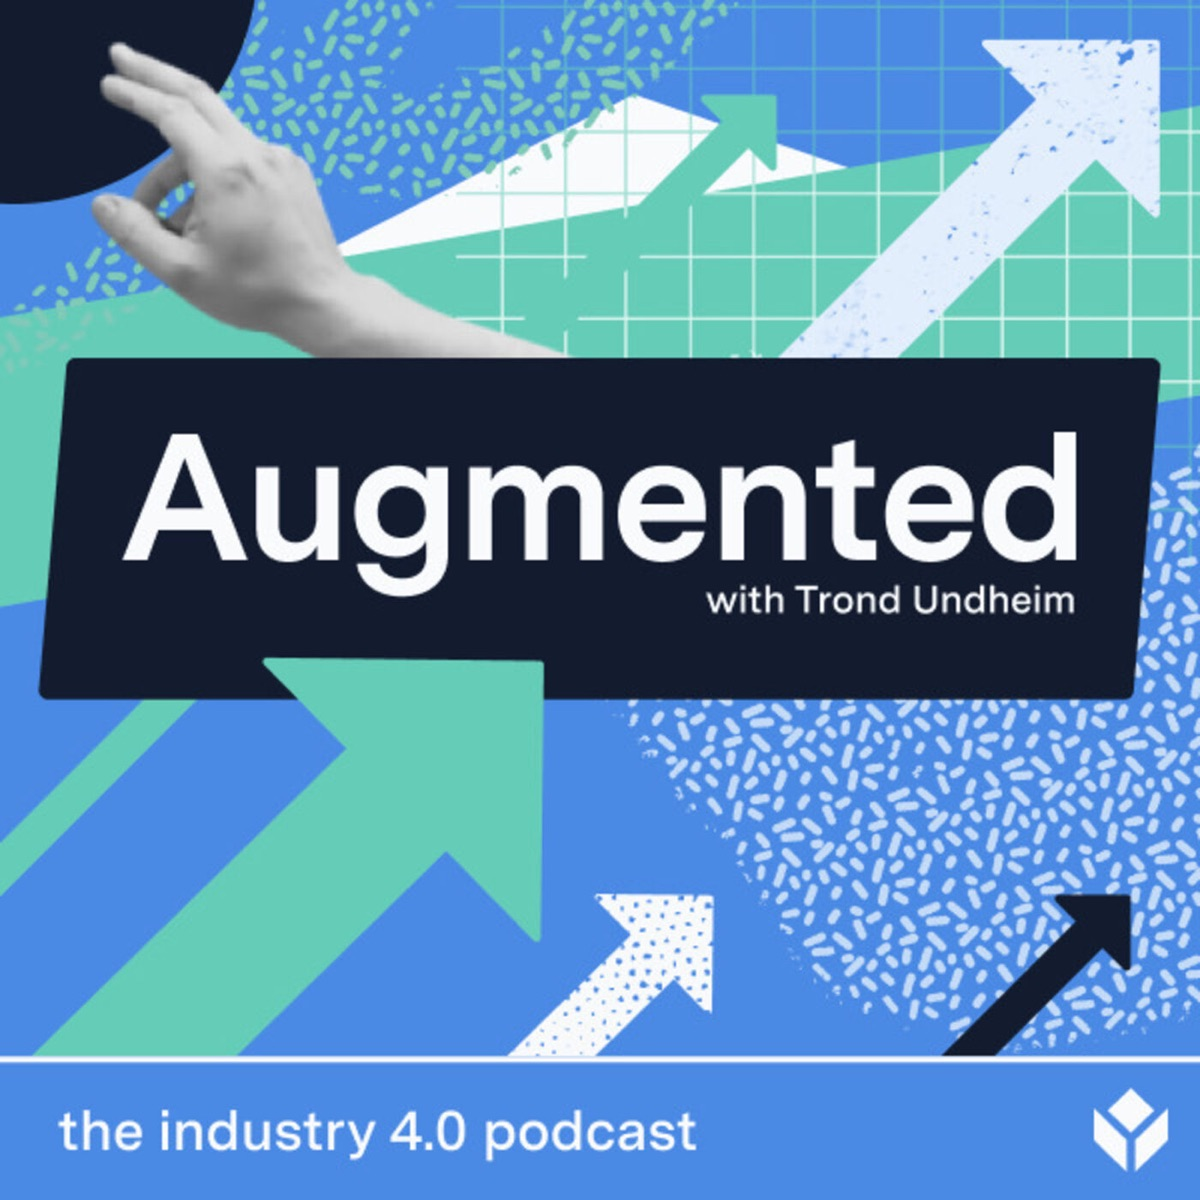 Augmented - the industry 4.0 podcast